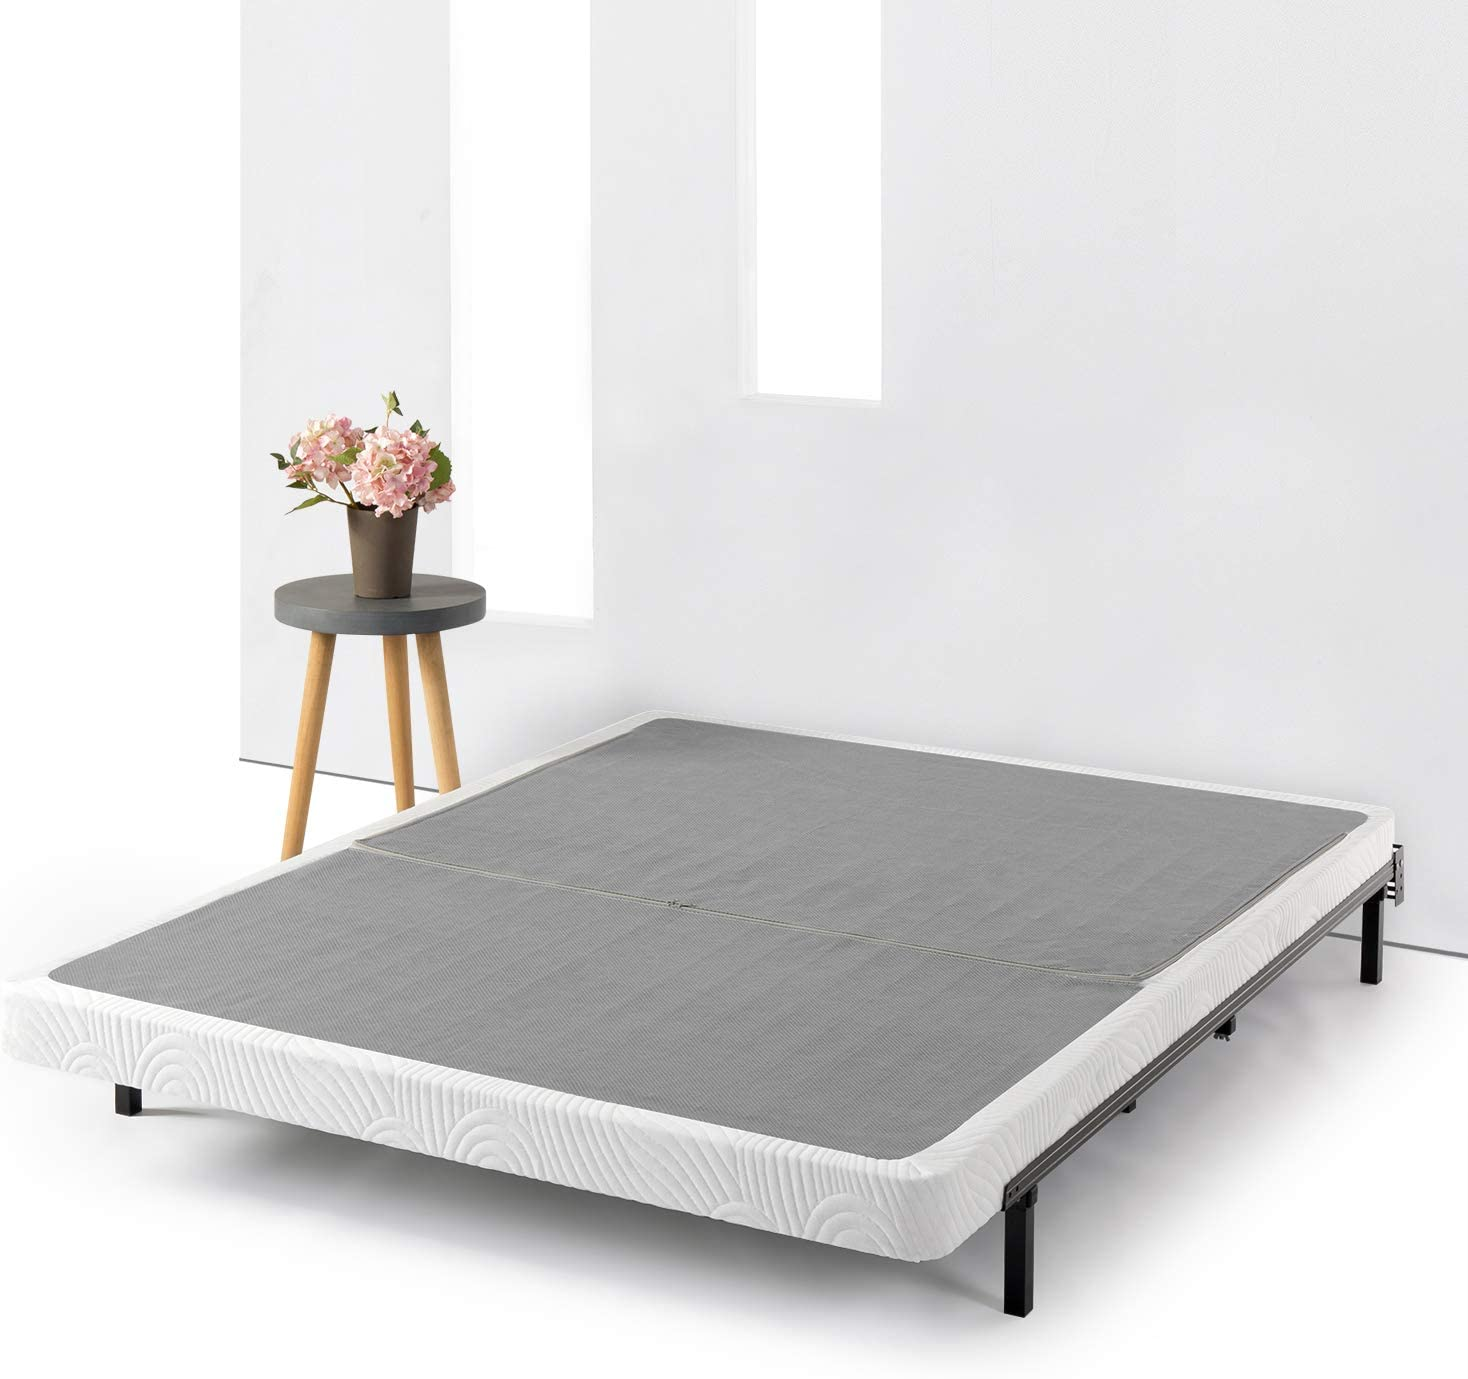 Best 70% OFF Outlet Price Mattress Low Sale special price Profile Bi-fold Heavy Duty Spring Box Fo